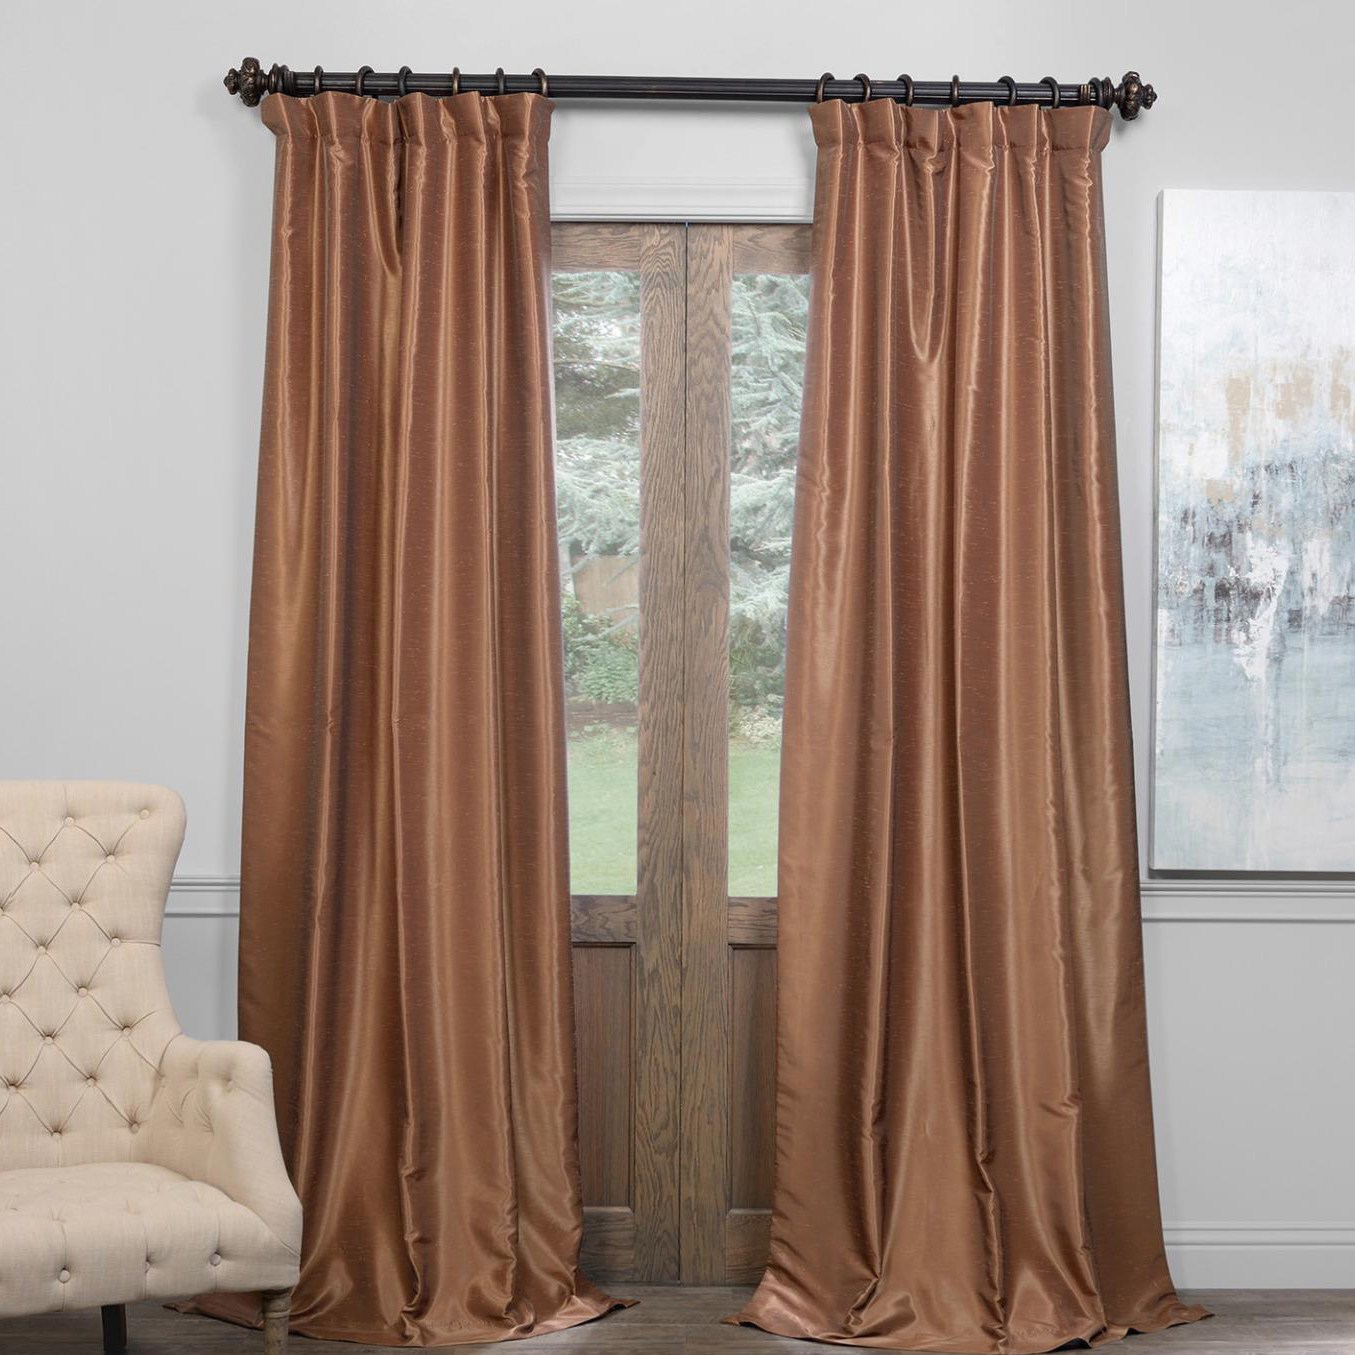 Exclusive Fabrics True Blackout Vintage Textured Faux Dupioni Silk Curtain Panel Intended For Vintage Faux Textured Dupioni Silk Curtain Panels (View 15 of 30)